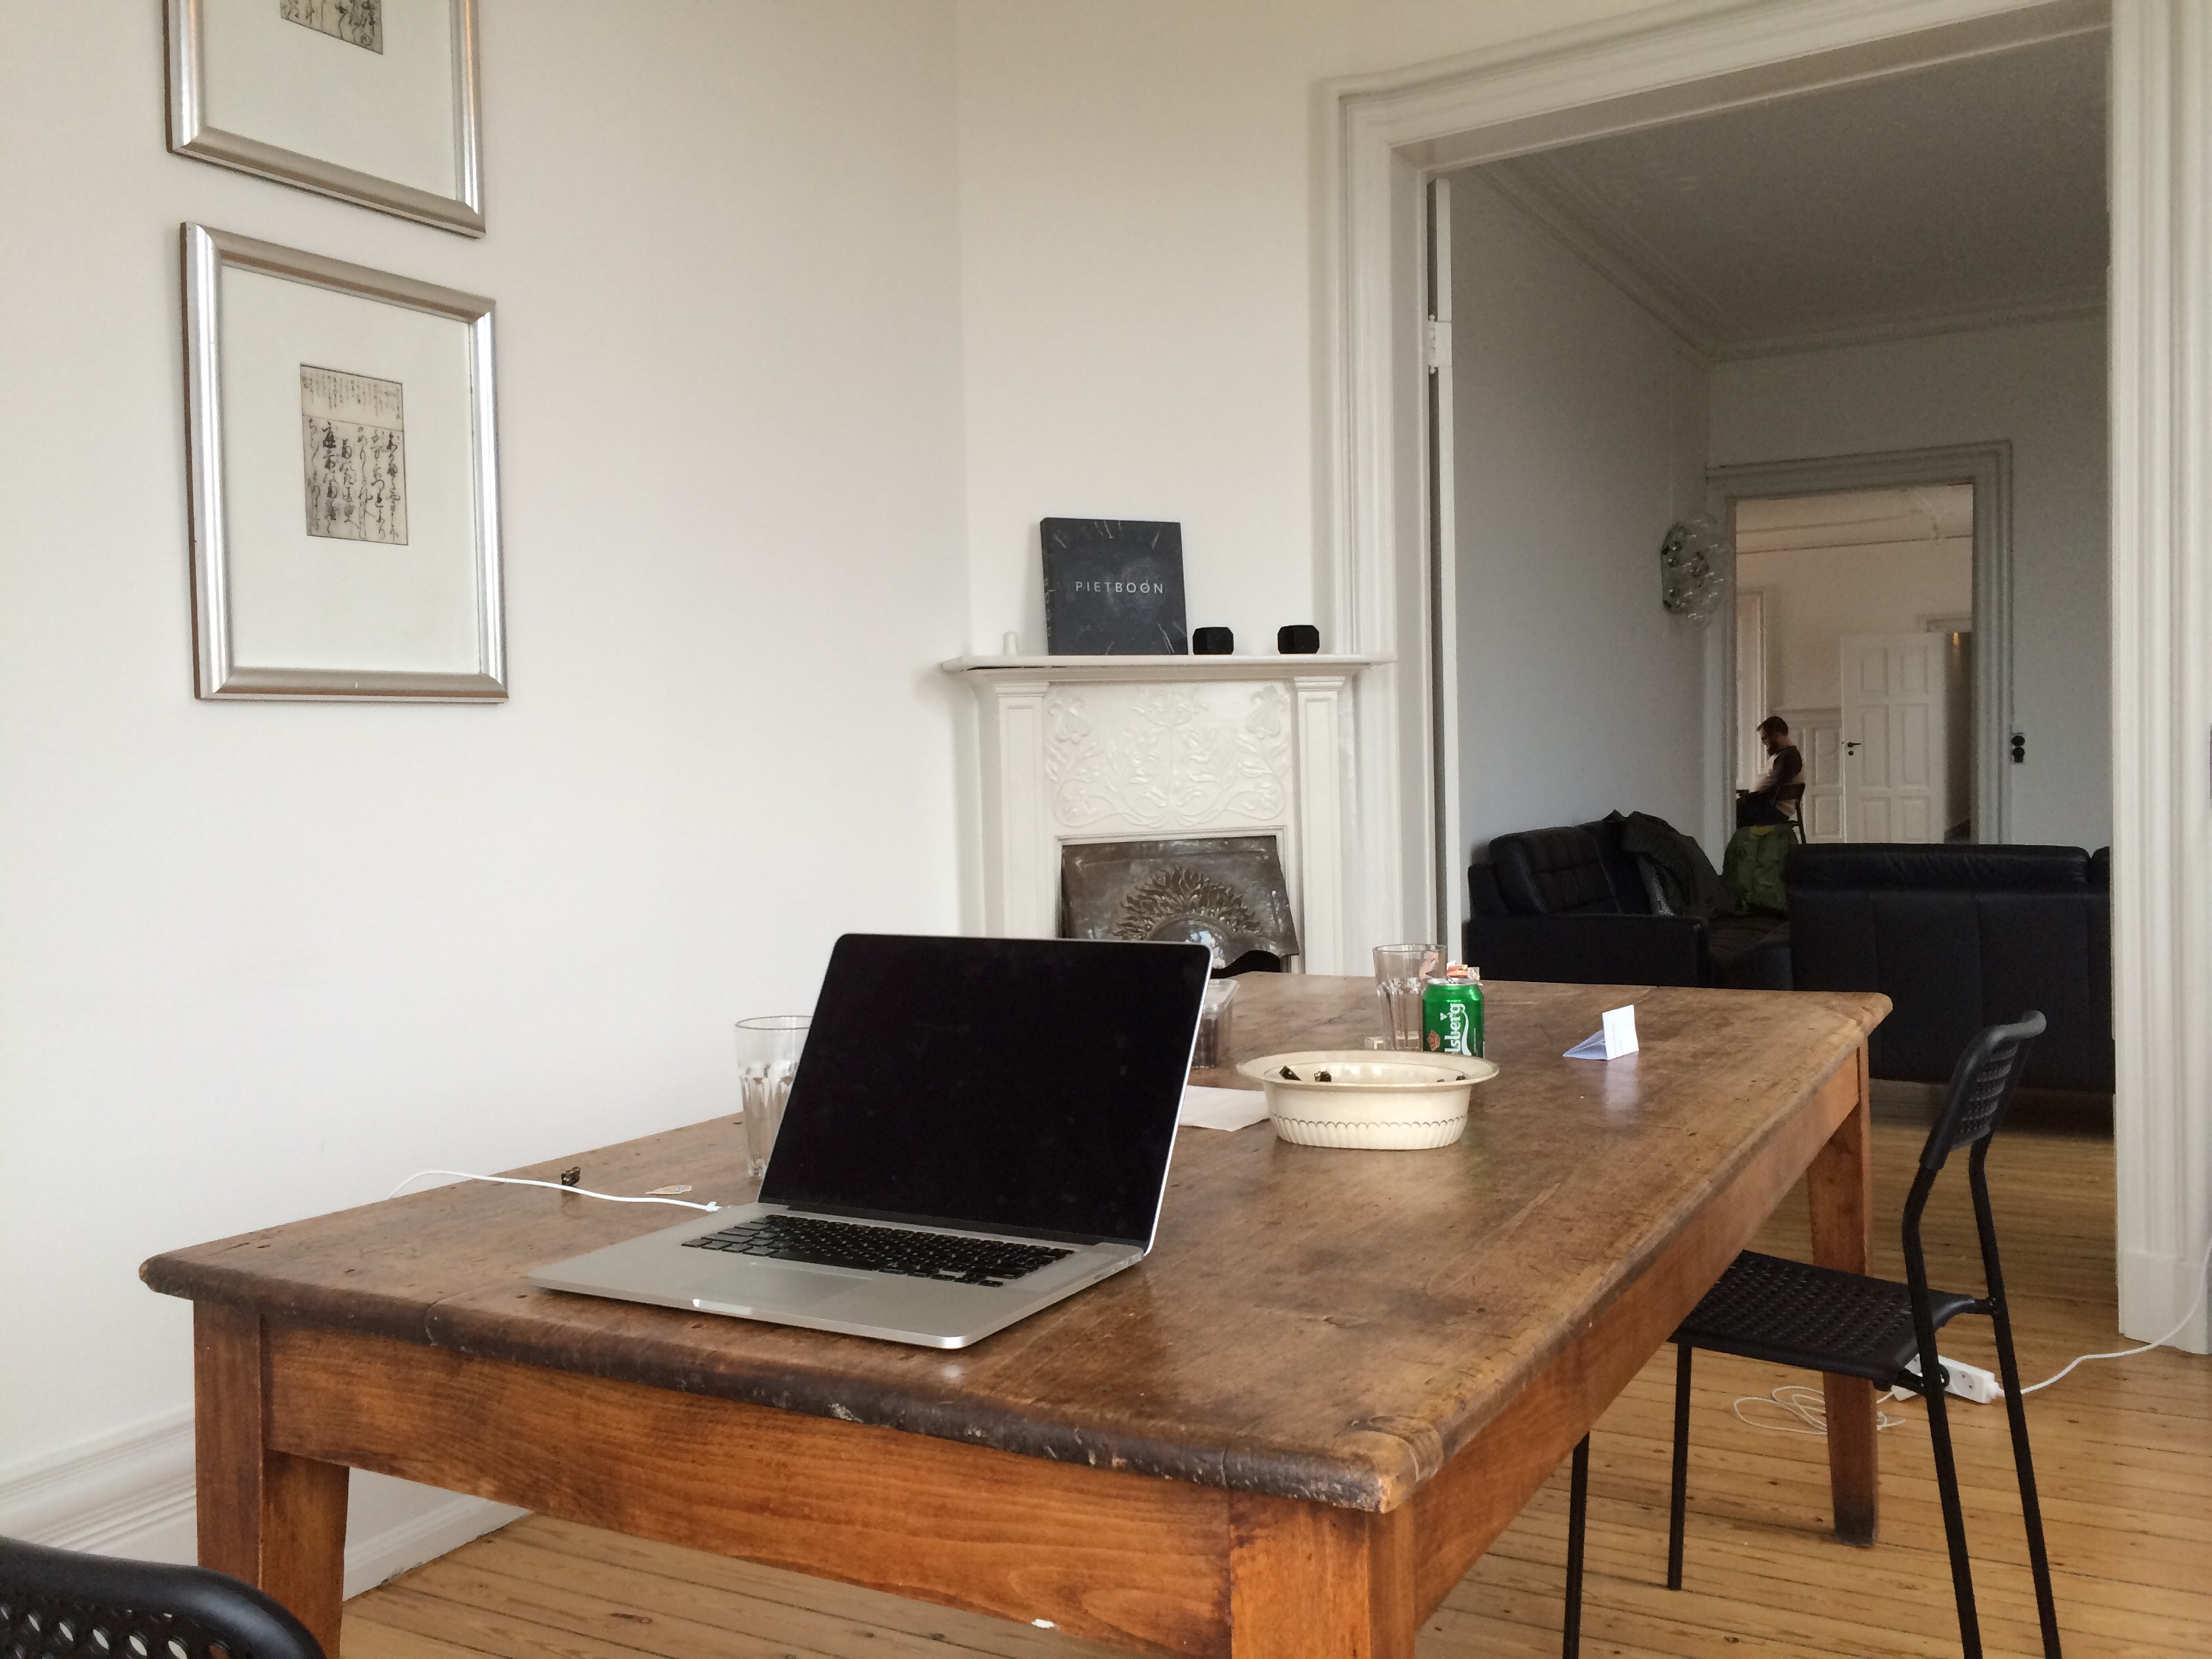 Workroom at the apartment